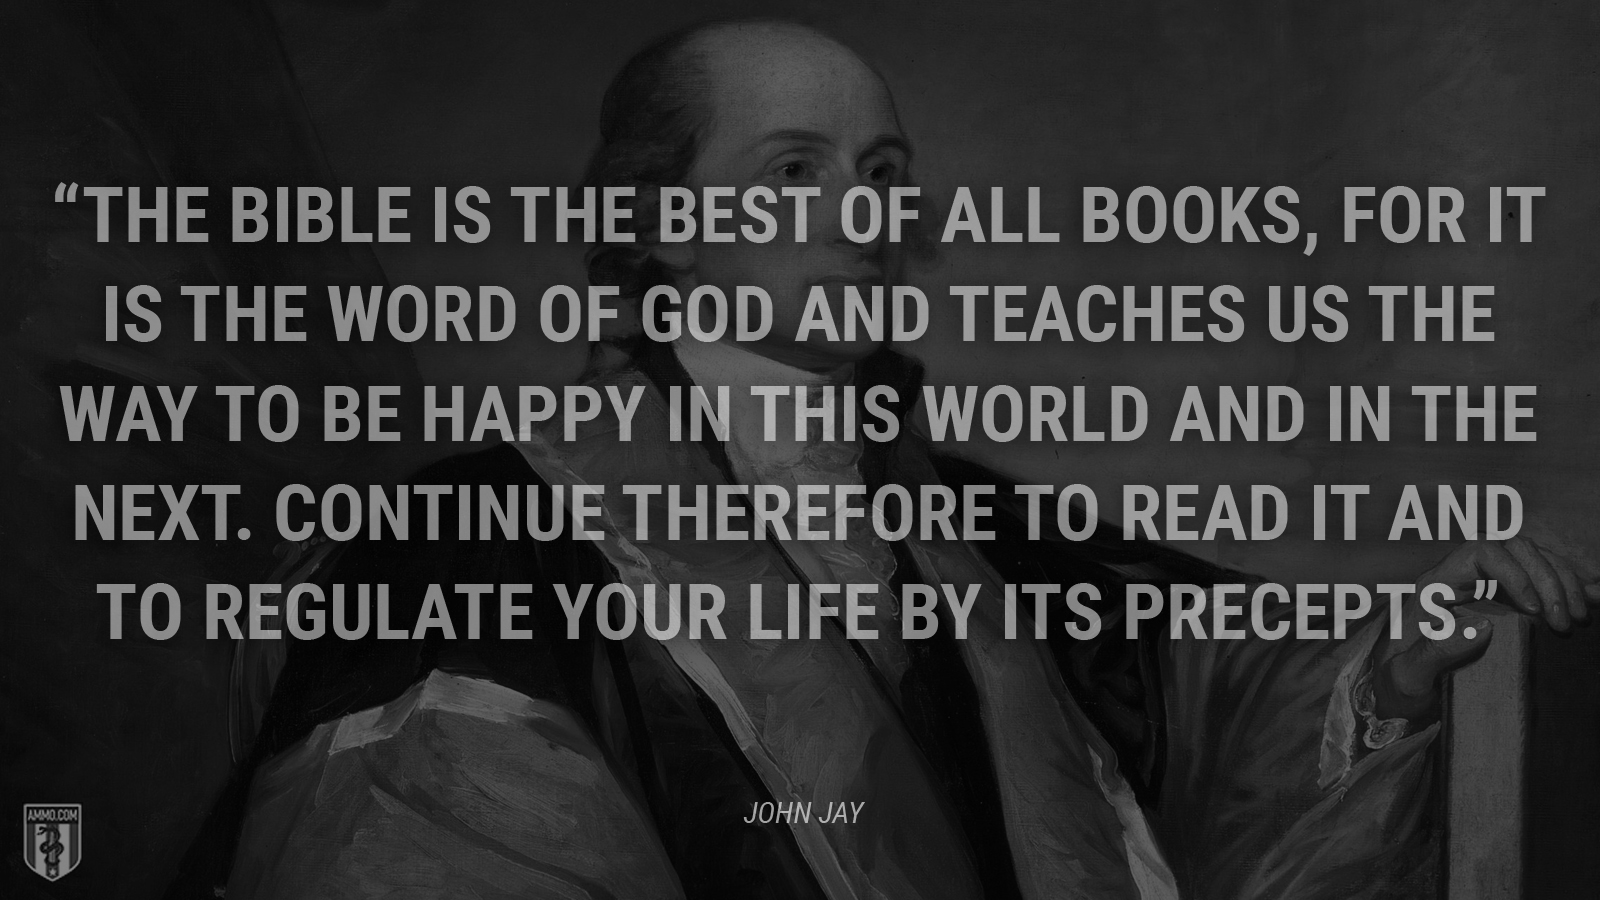 """The Bible is the best of all books, for it is the word of God and teaches us the way to be happy in this world and in the next. Continue therefore to read it and to regulate your life by its precepts."" - John Jay"